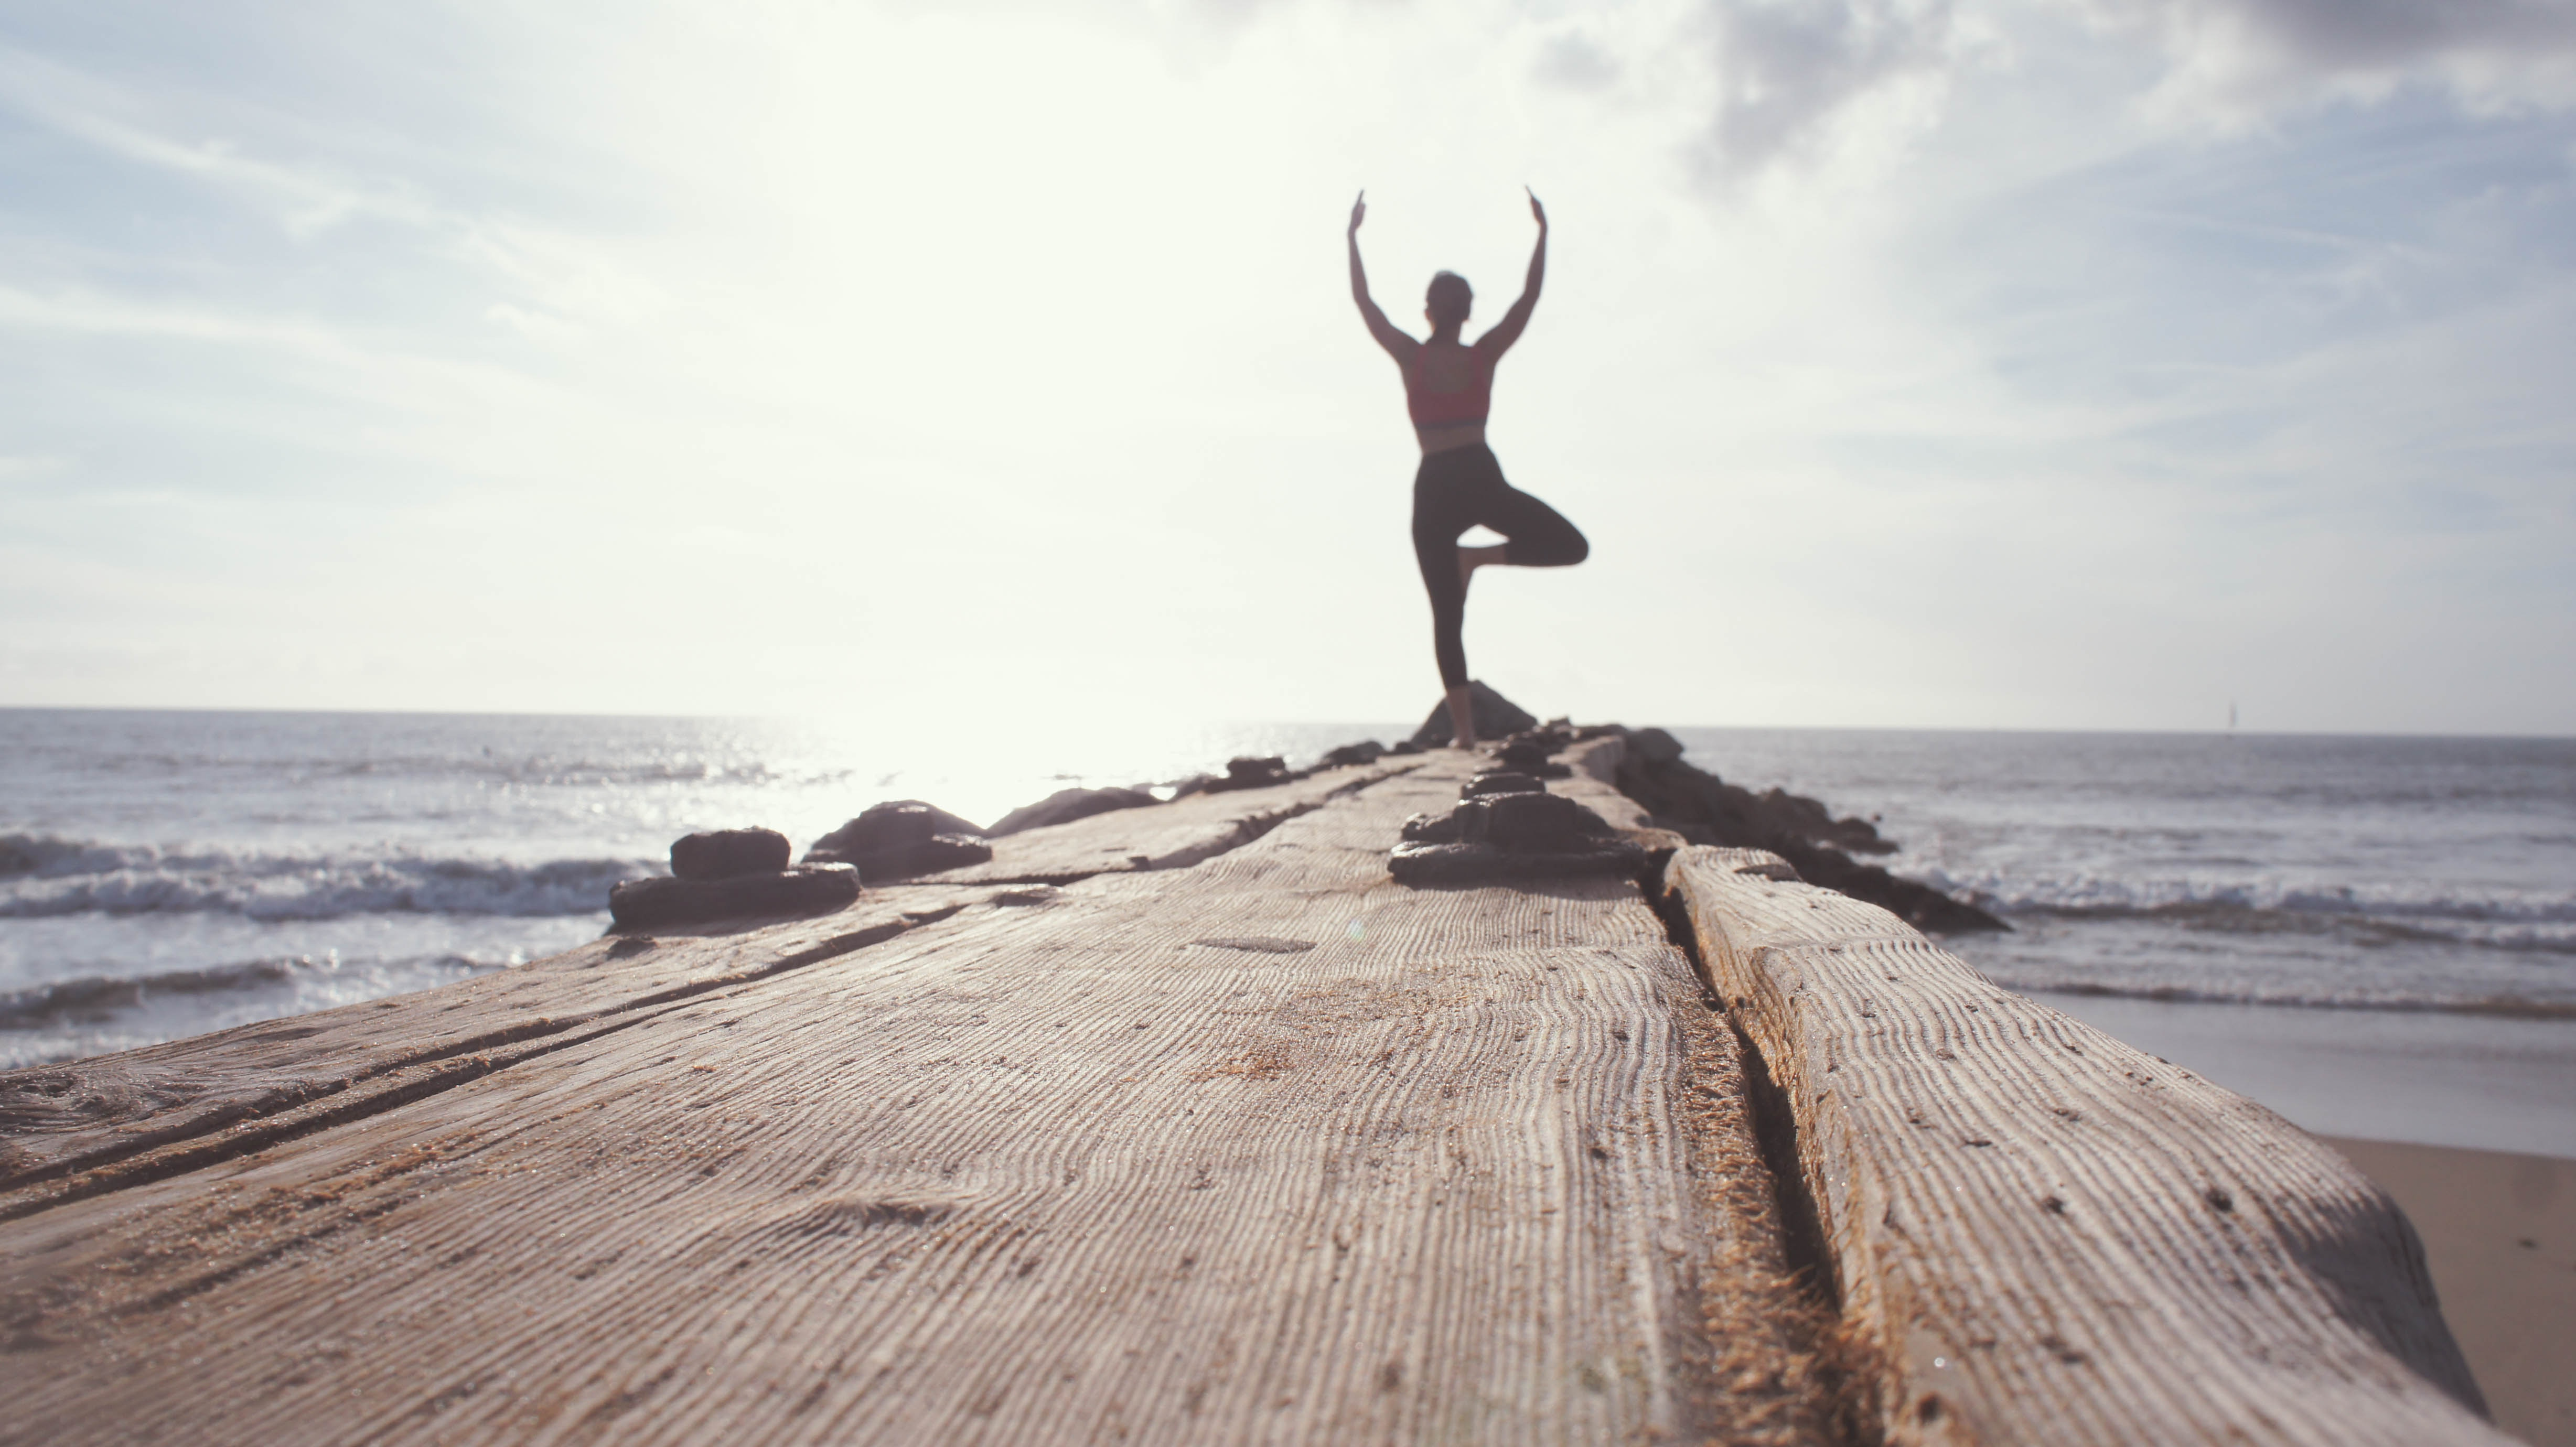 Healthcare expert exercising by the ocean.